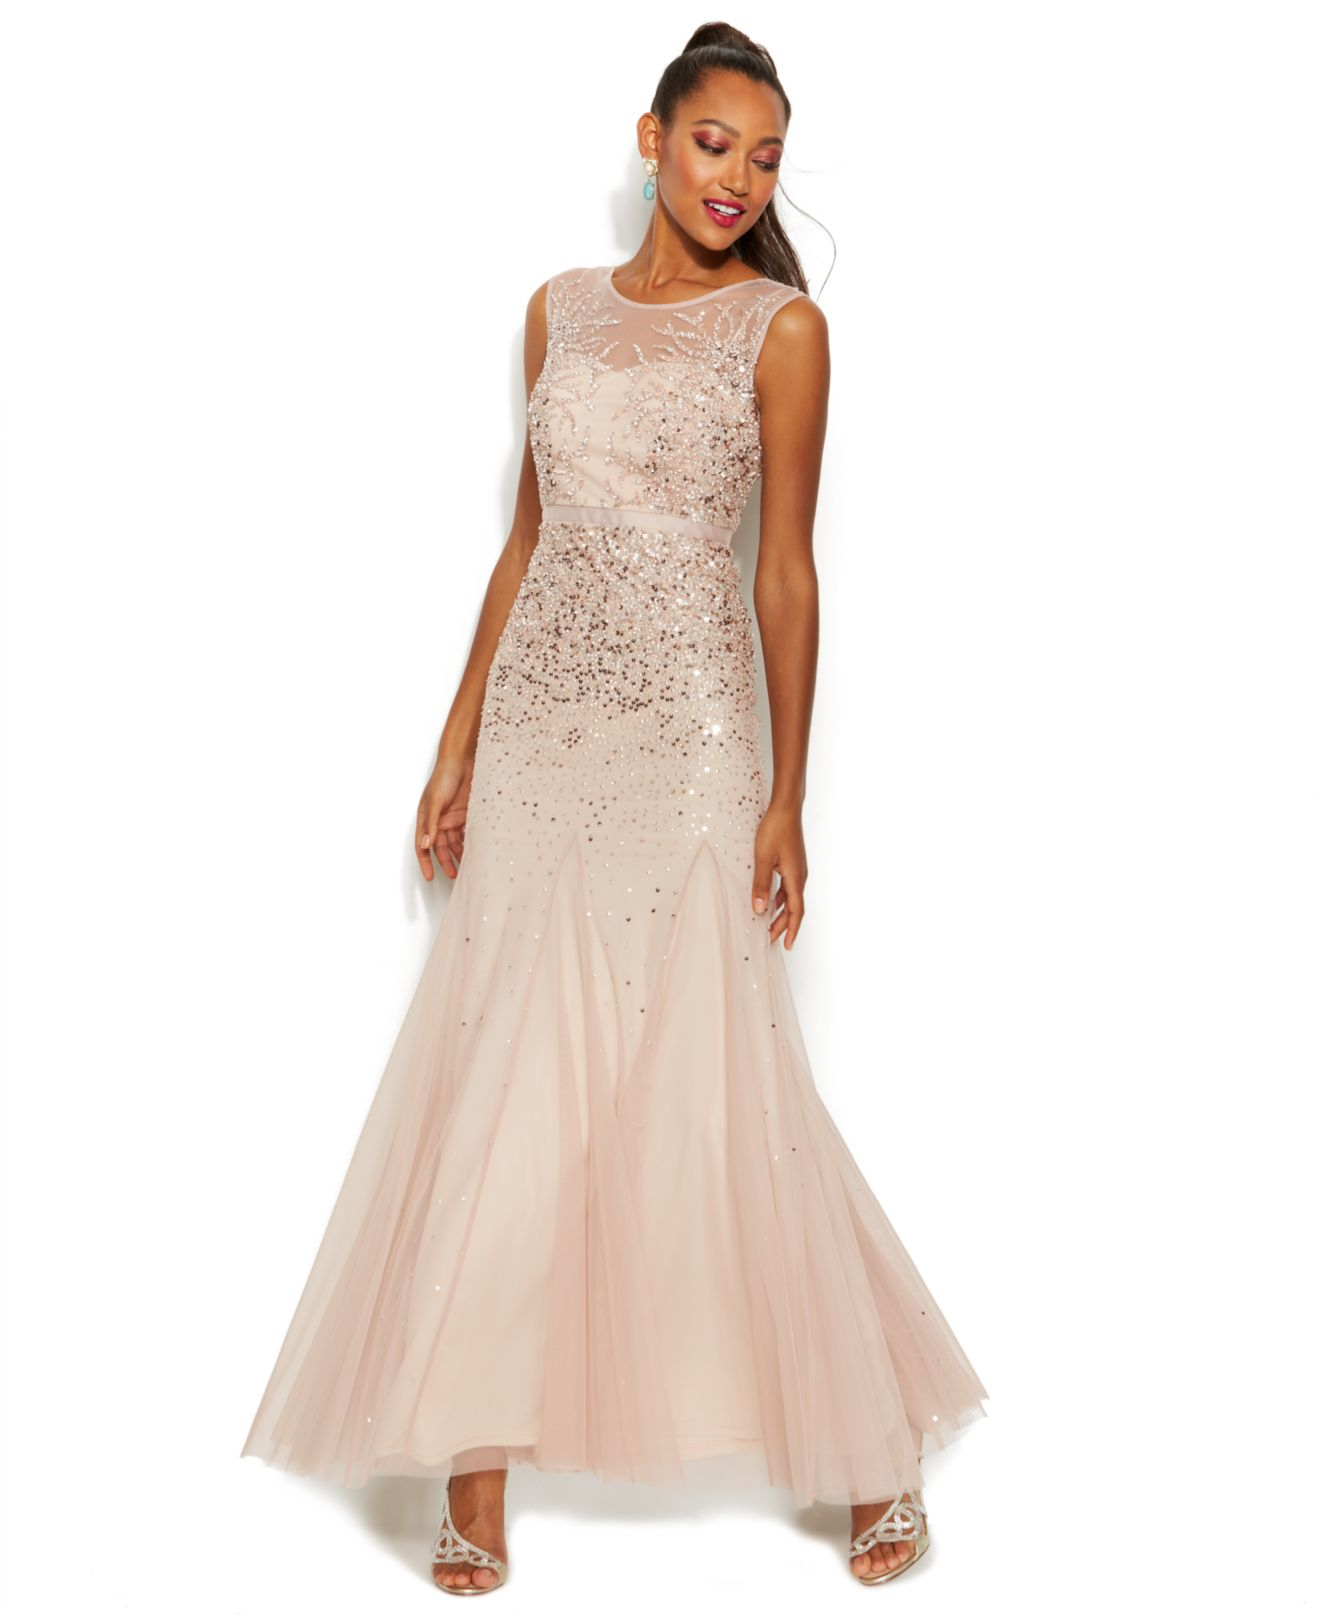 Blush Wedding Dress Petite : Adrianna papell sleeveless beaded illusion gown in pink lyst